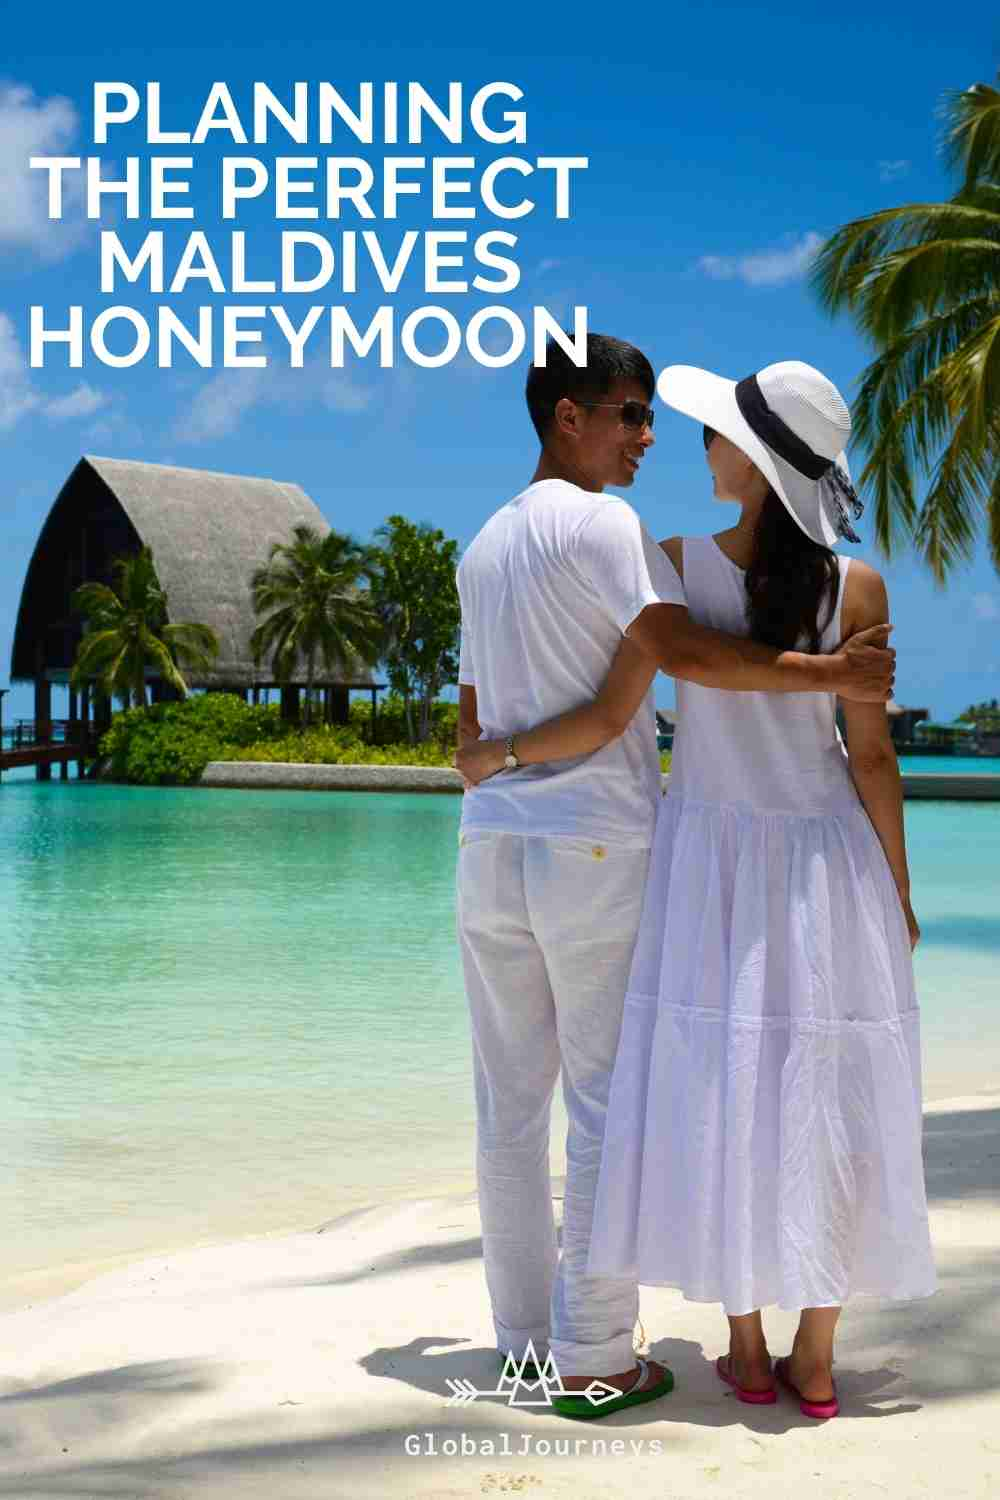 Planning the Perfect Maldives Honeymoon